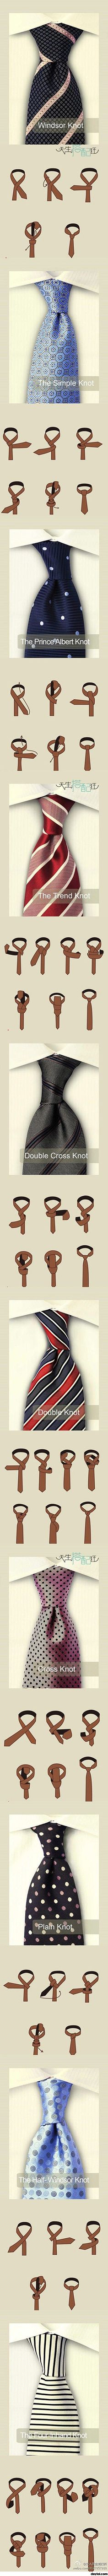 Different ways to tie a tie and look like a distinguished gentleman